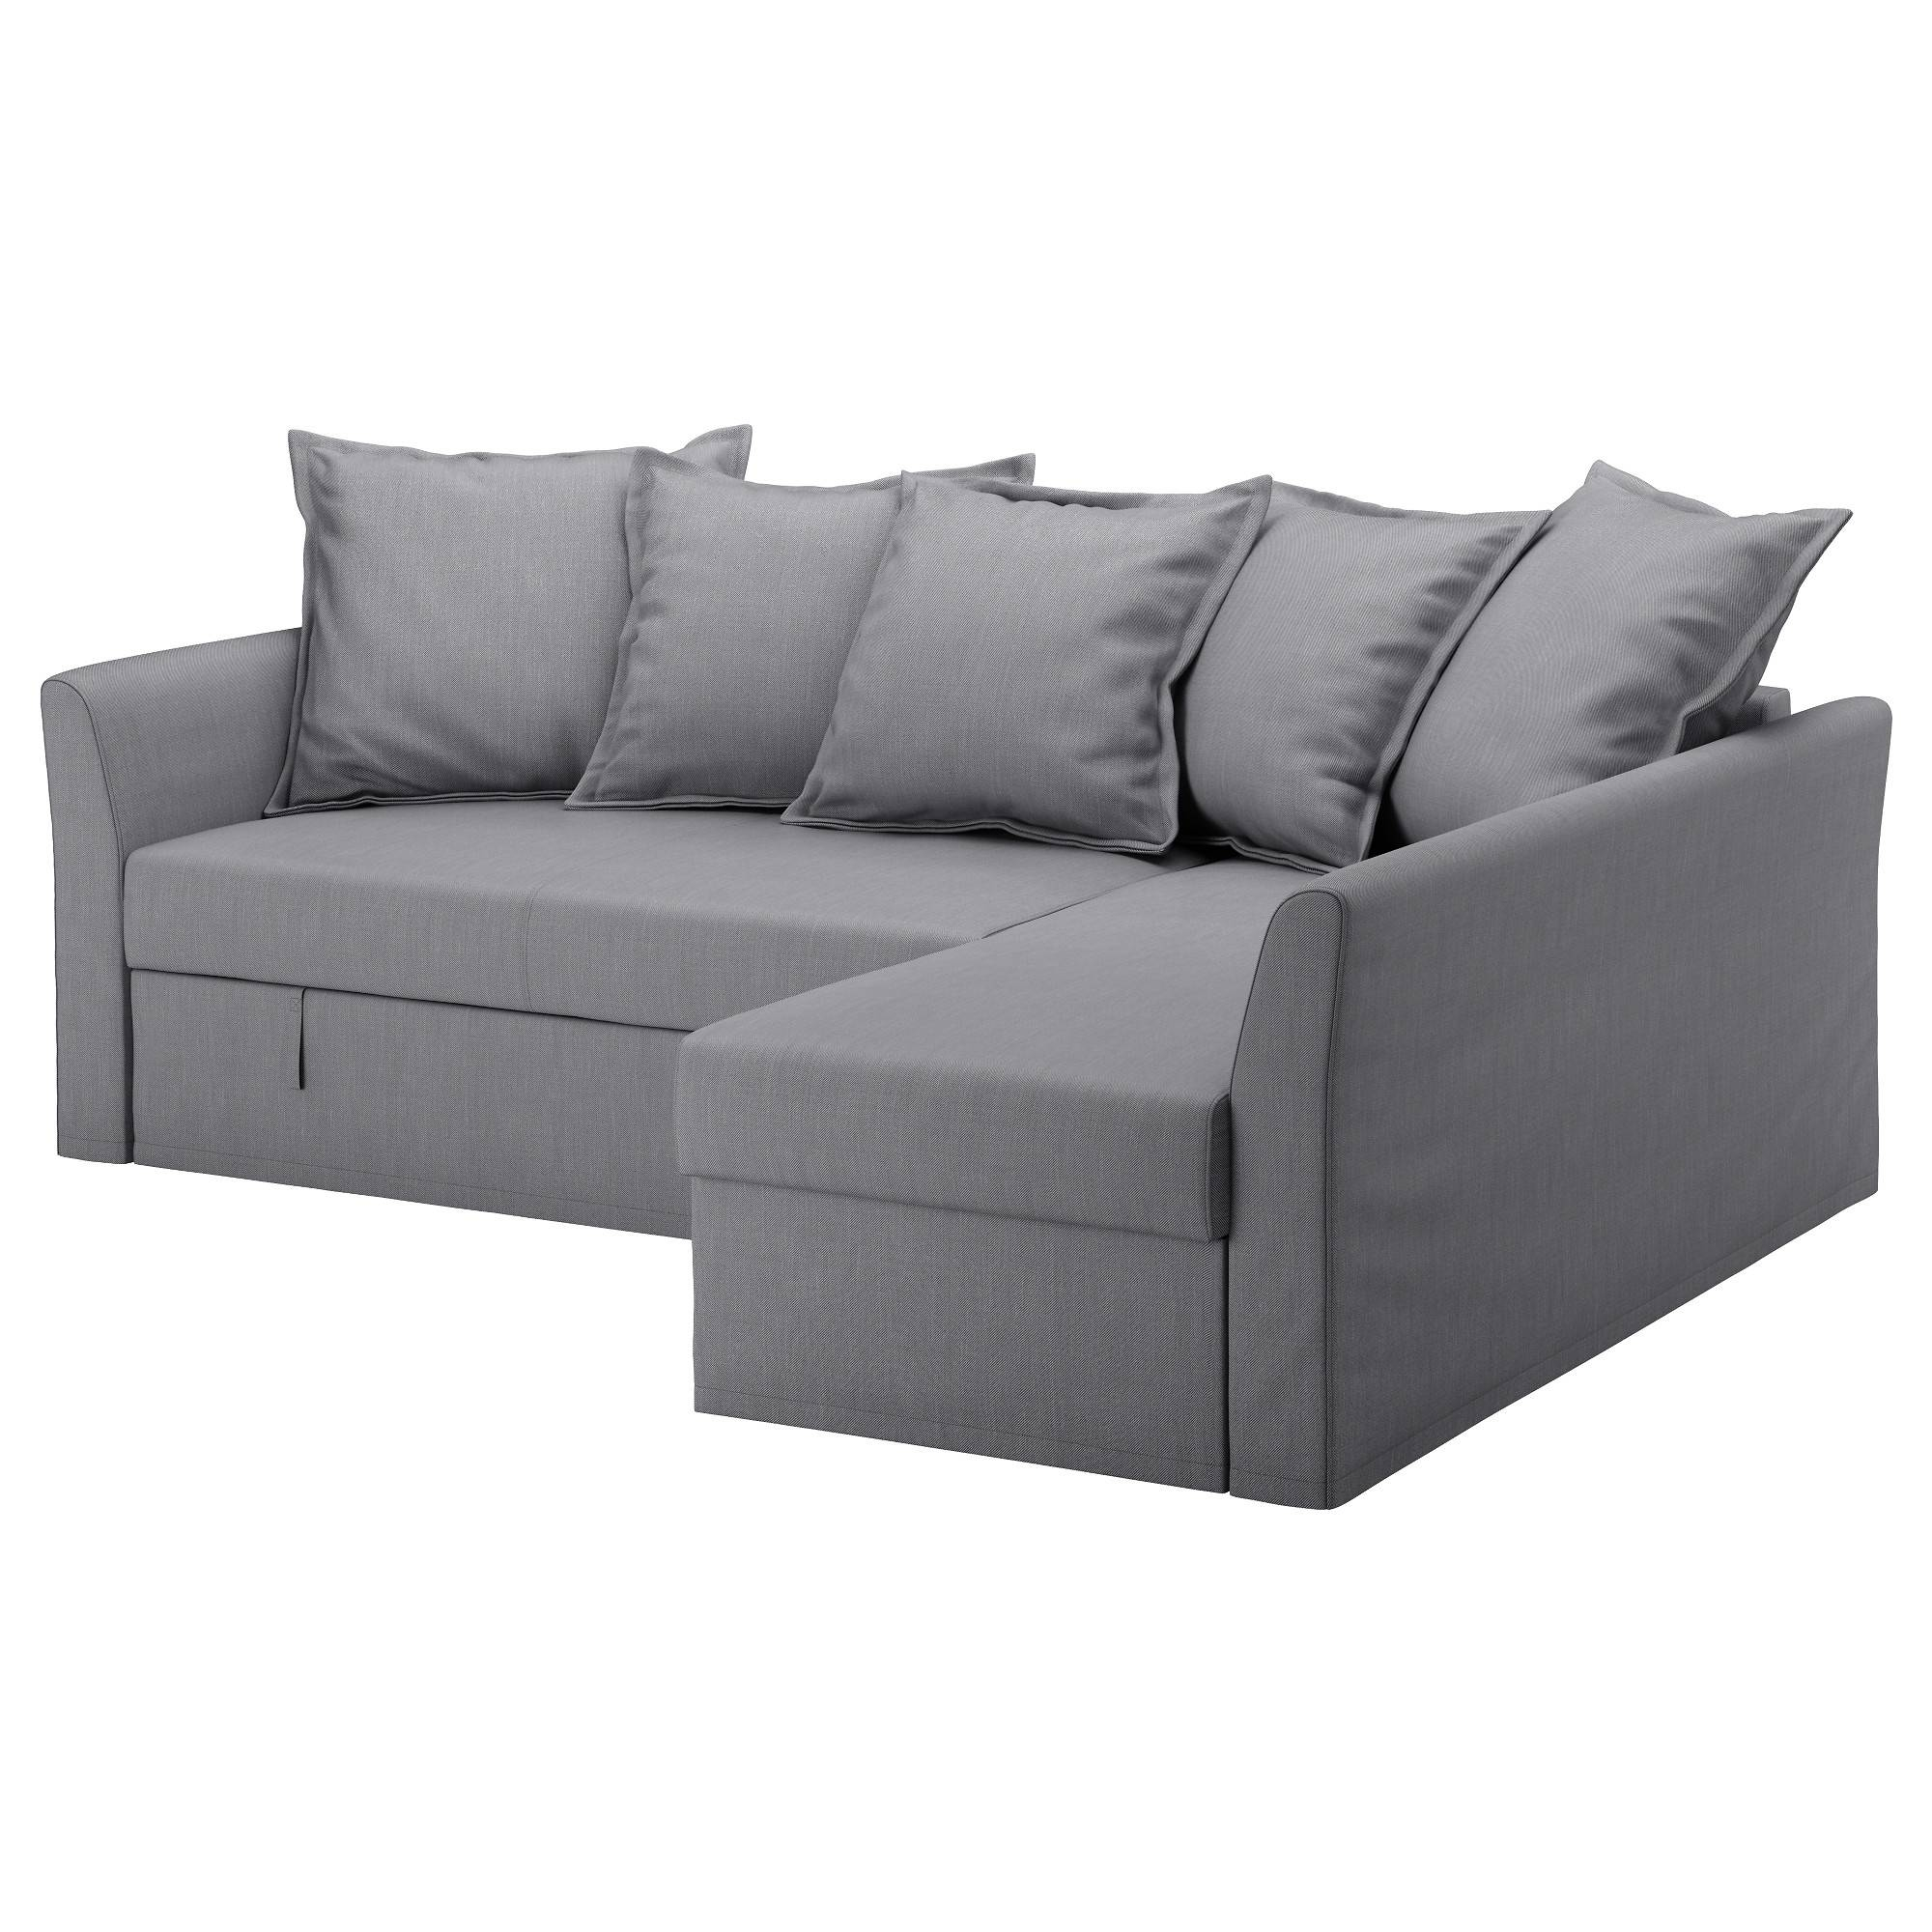 Holmsund Cover For Sleeper Sectional, 3 Seat - Nordvalla Medium intended for Ikea Sofa Storage (Image 15 of 25)